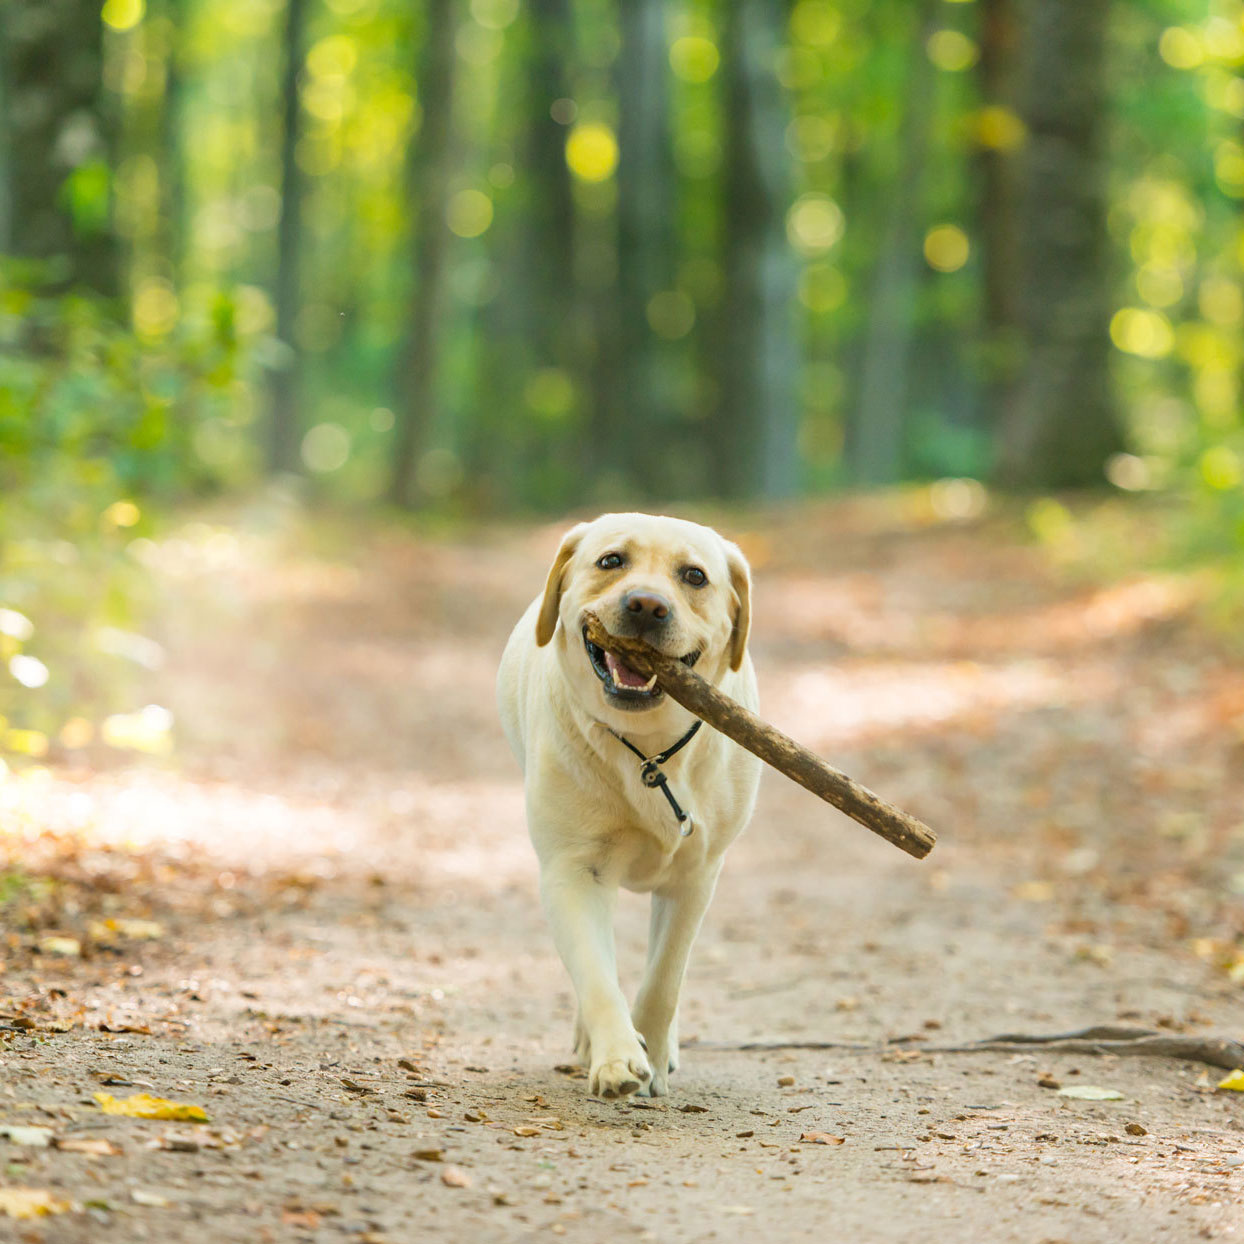 yellow lab carrying a stick and looking happy